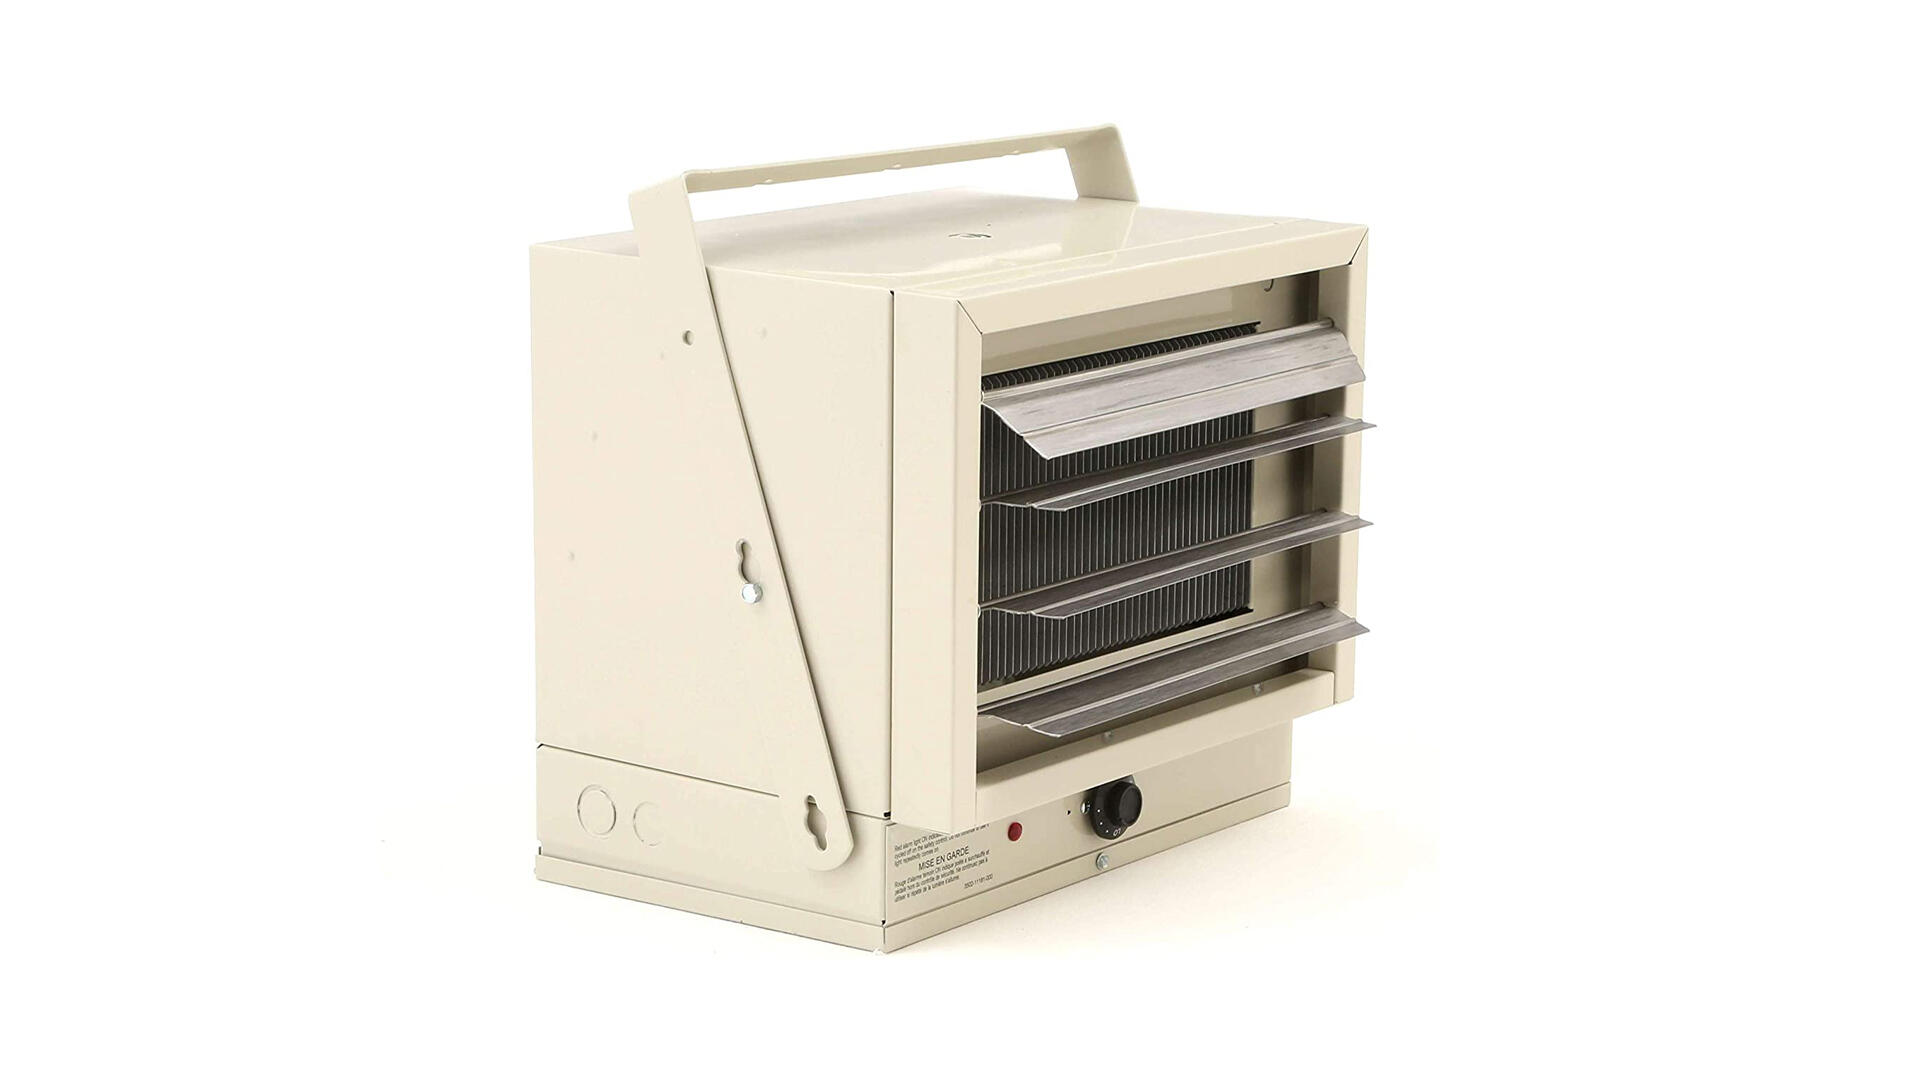 fahrenheat fuh54 electric heater | Best garage heaters for 2021 | The Paradise